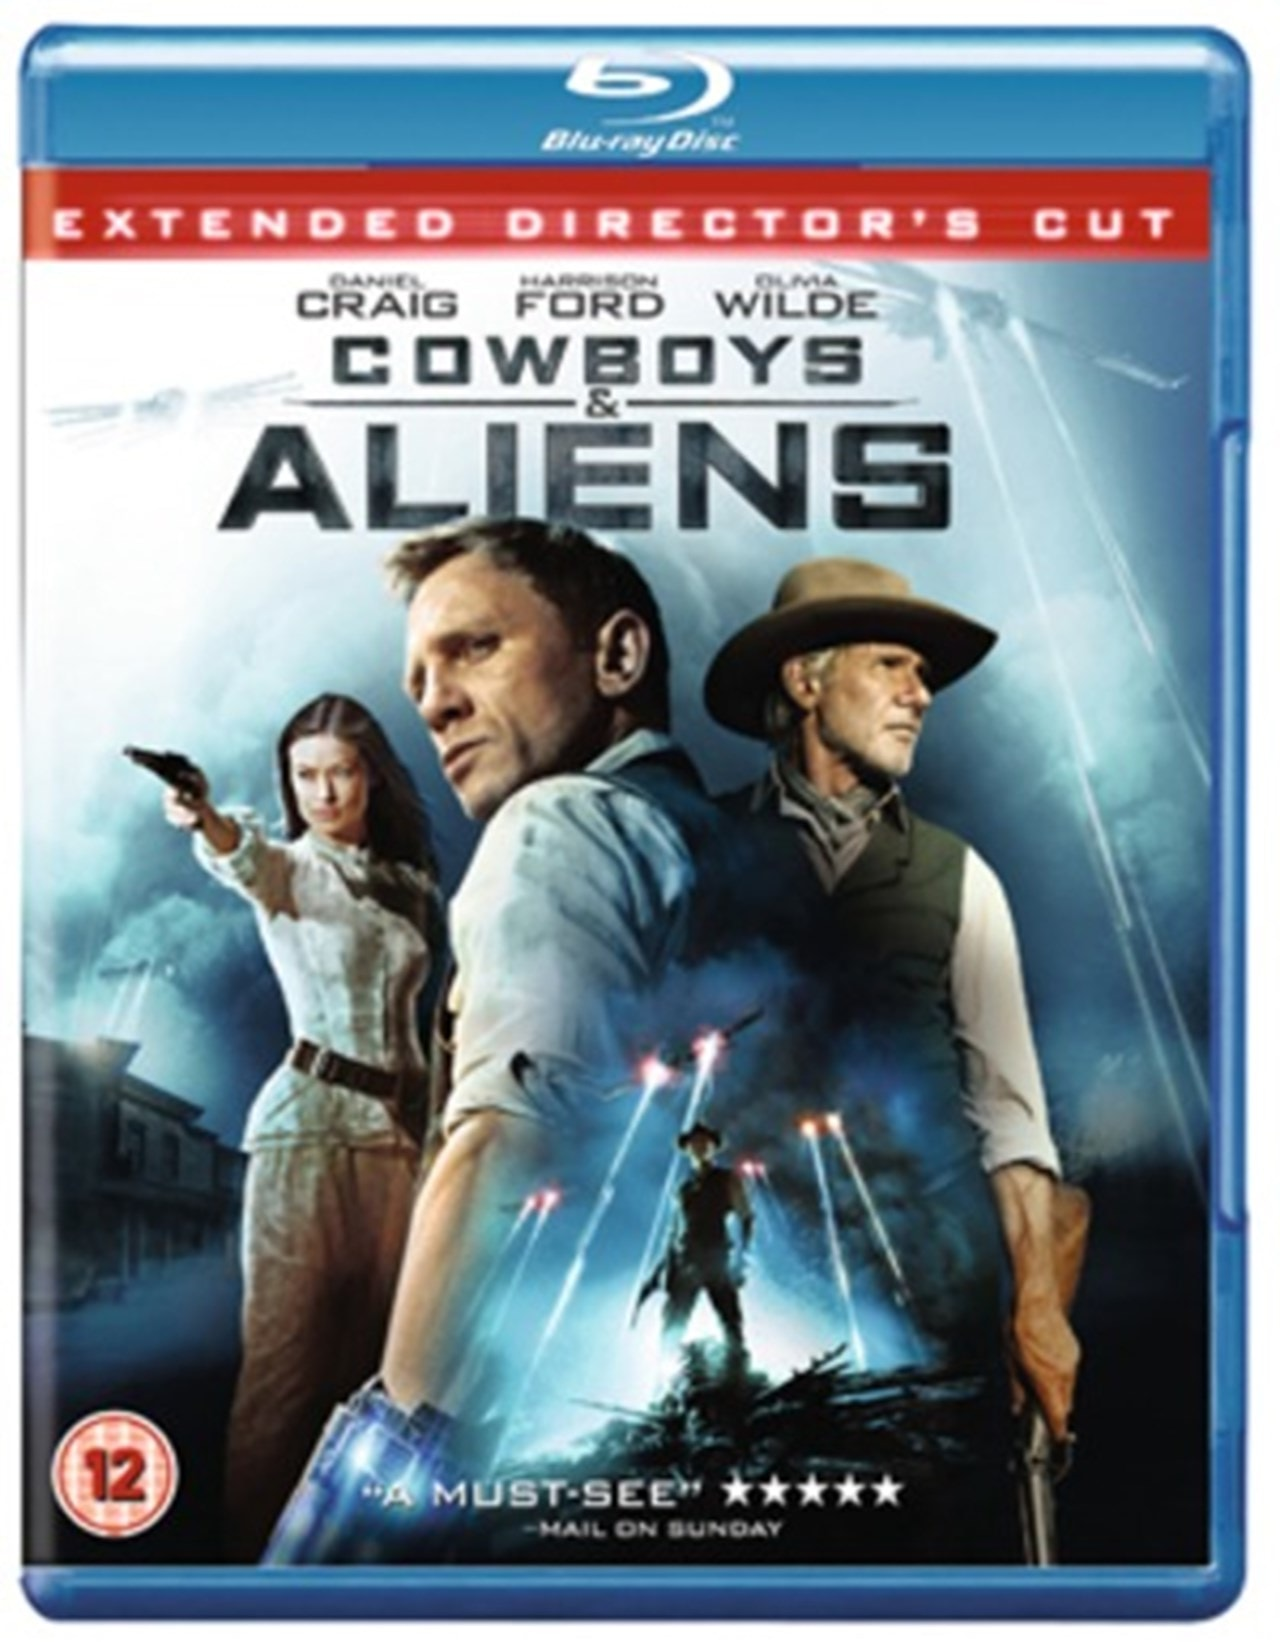 Cowboys and Aliens - 1